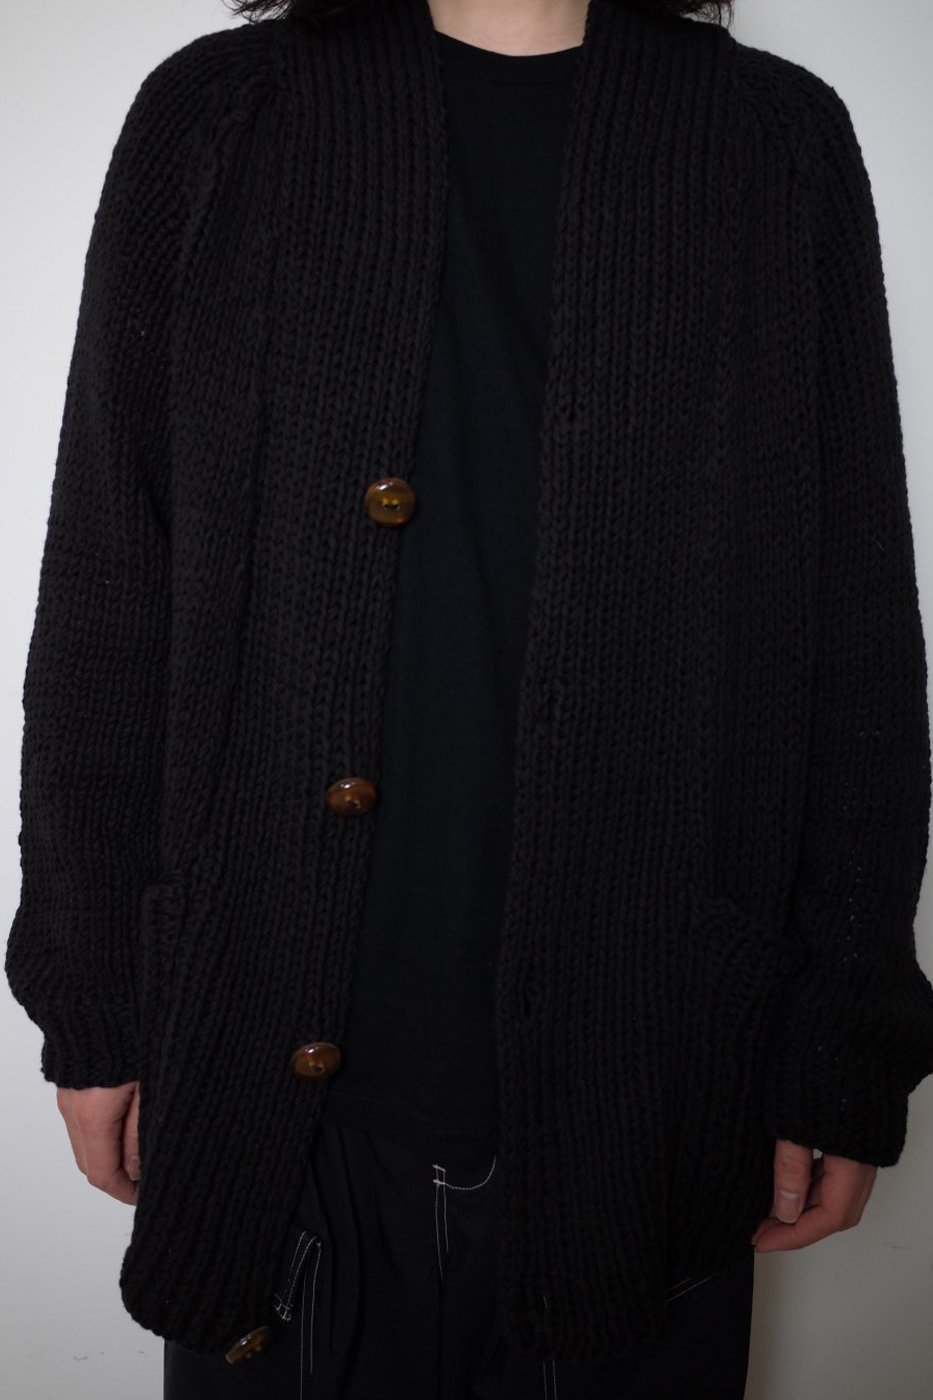 <img class='new_mark_img1' src='https://img.shop-pro.jp/img/new/icons8.gif' style='border:none;display:inline;margin:0px;padding:0px;width:auto;' />MAYDI マイディ-LONG SLEEVES CARDIGAN POCKET KNIT FRONT BUTTONS/LUI-BLACK